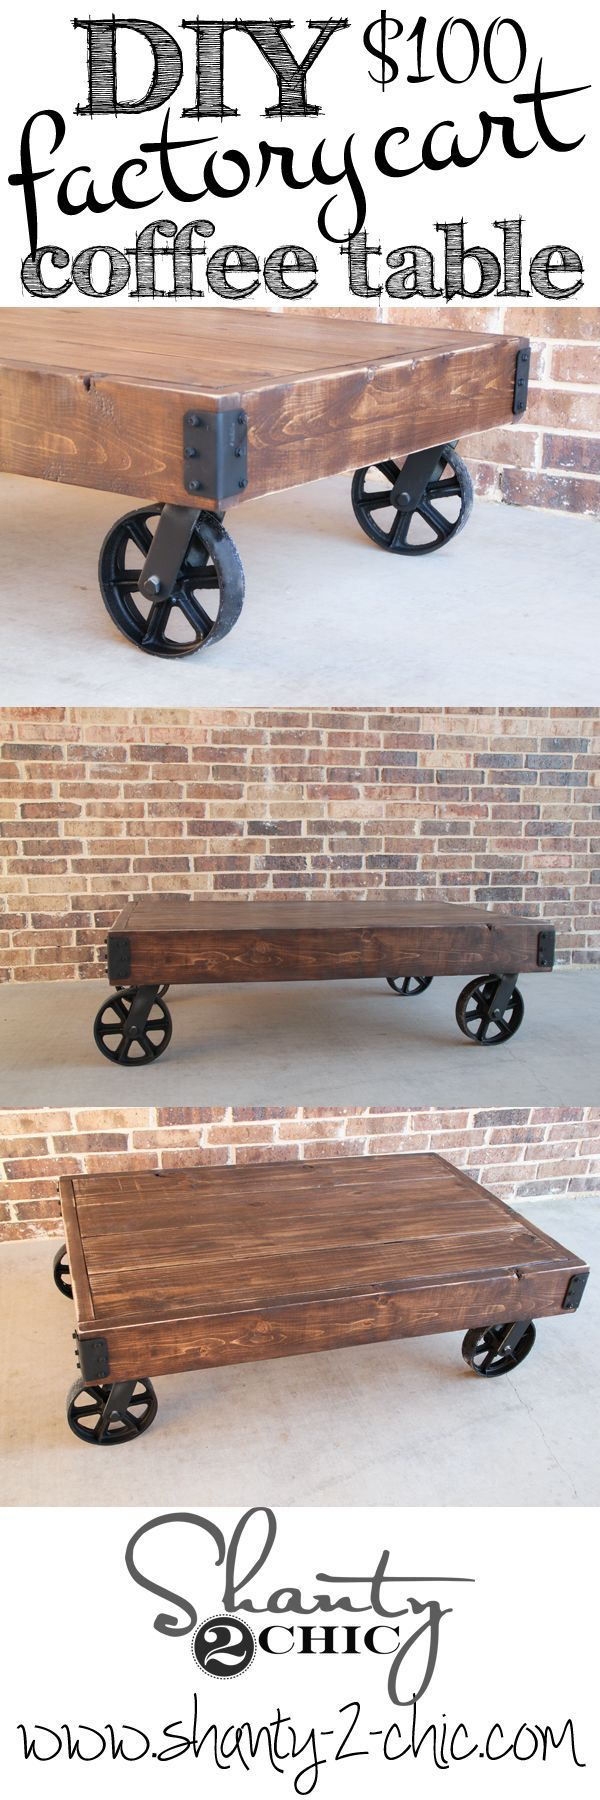 Easy and inexpensive factory cart coffee table that anyone can build! I want 5 :)